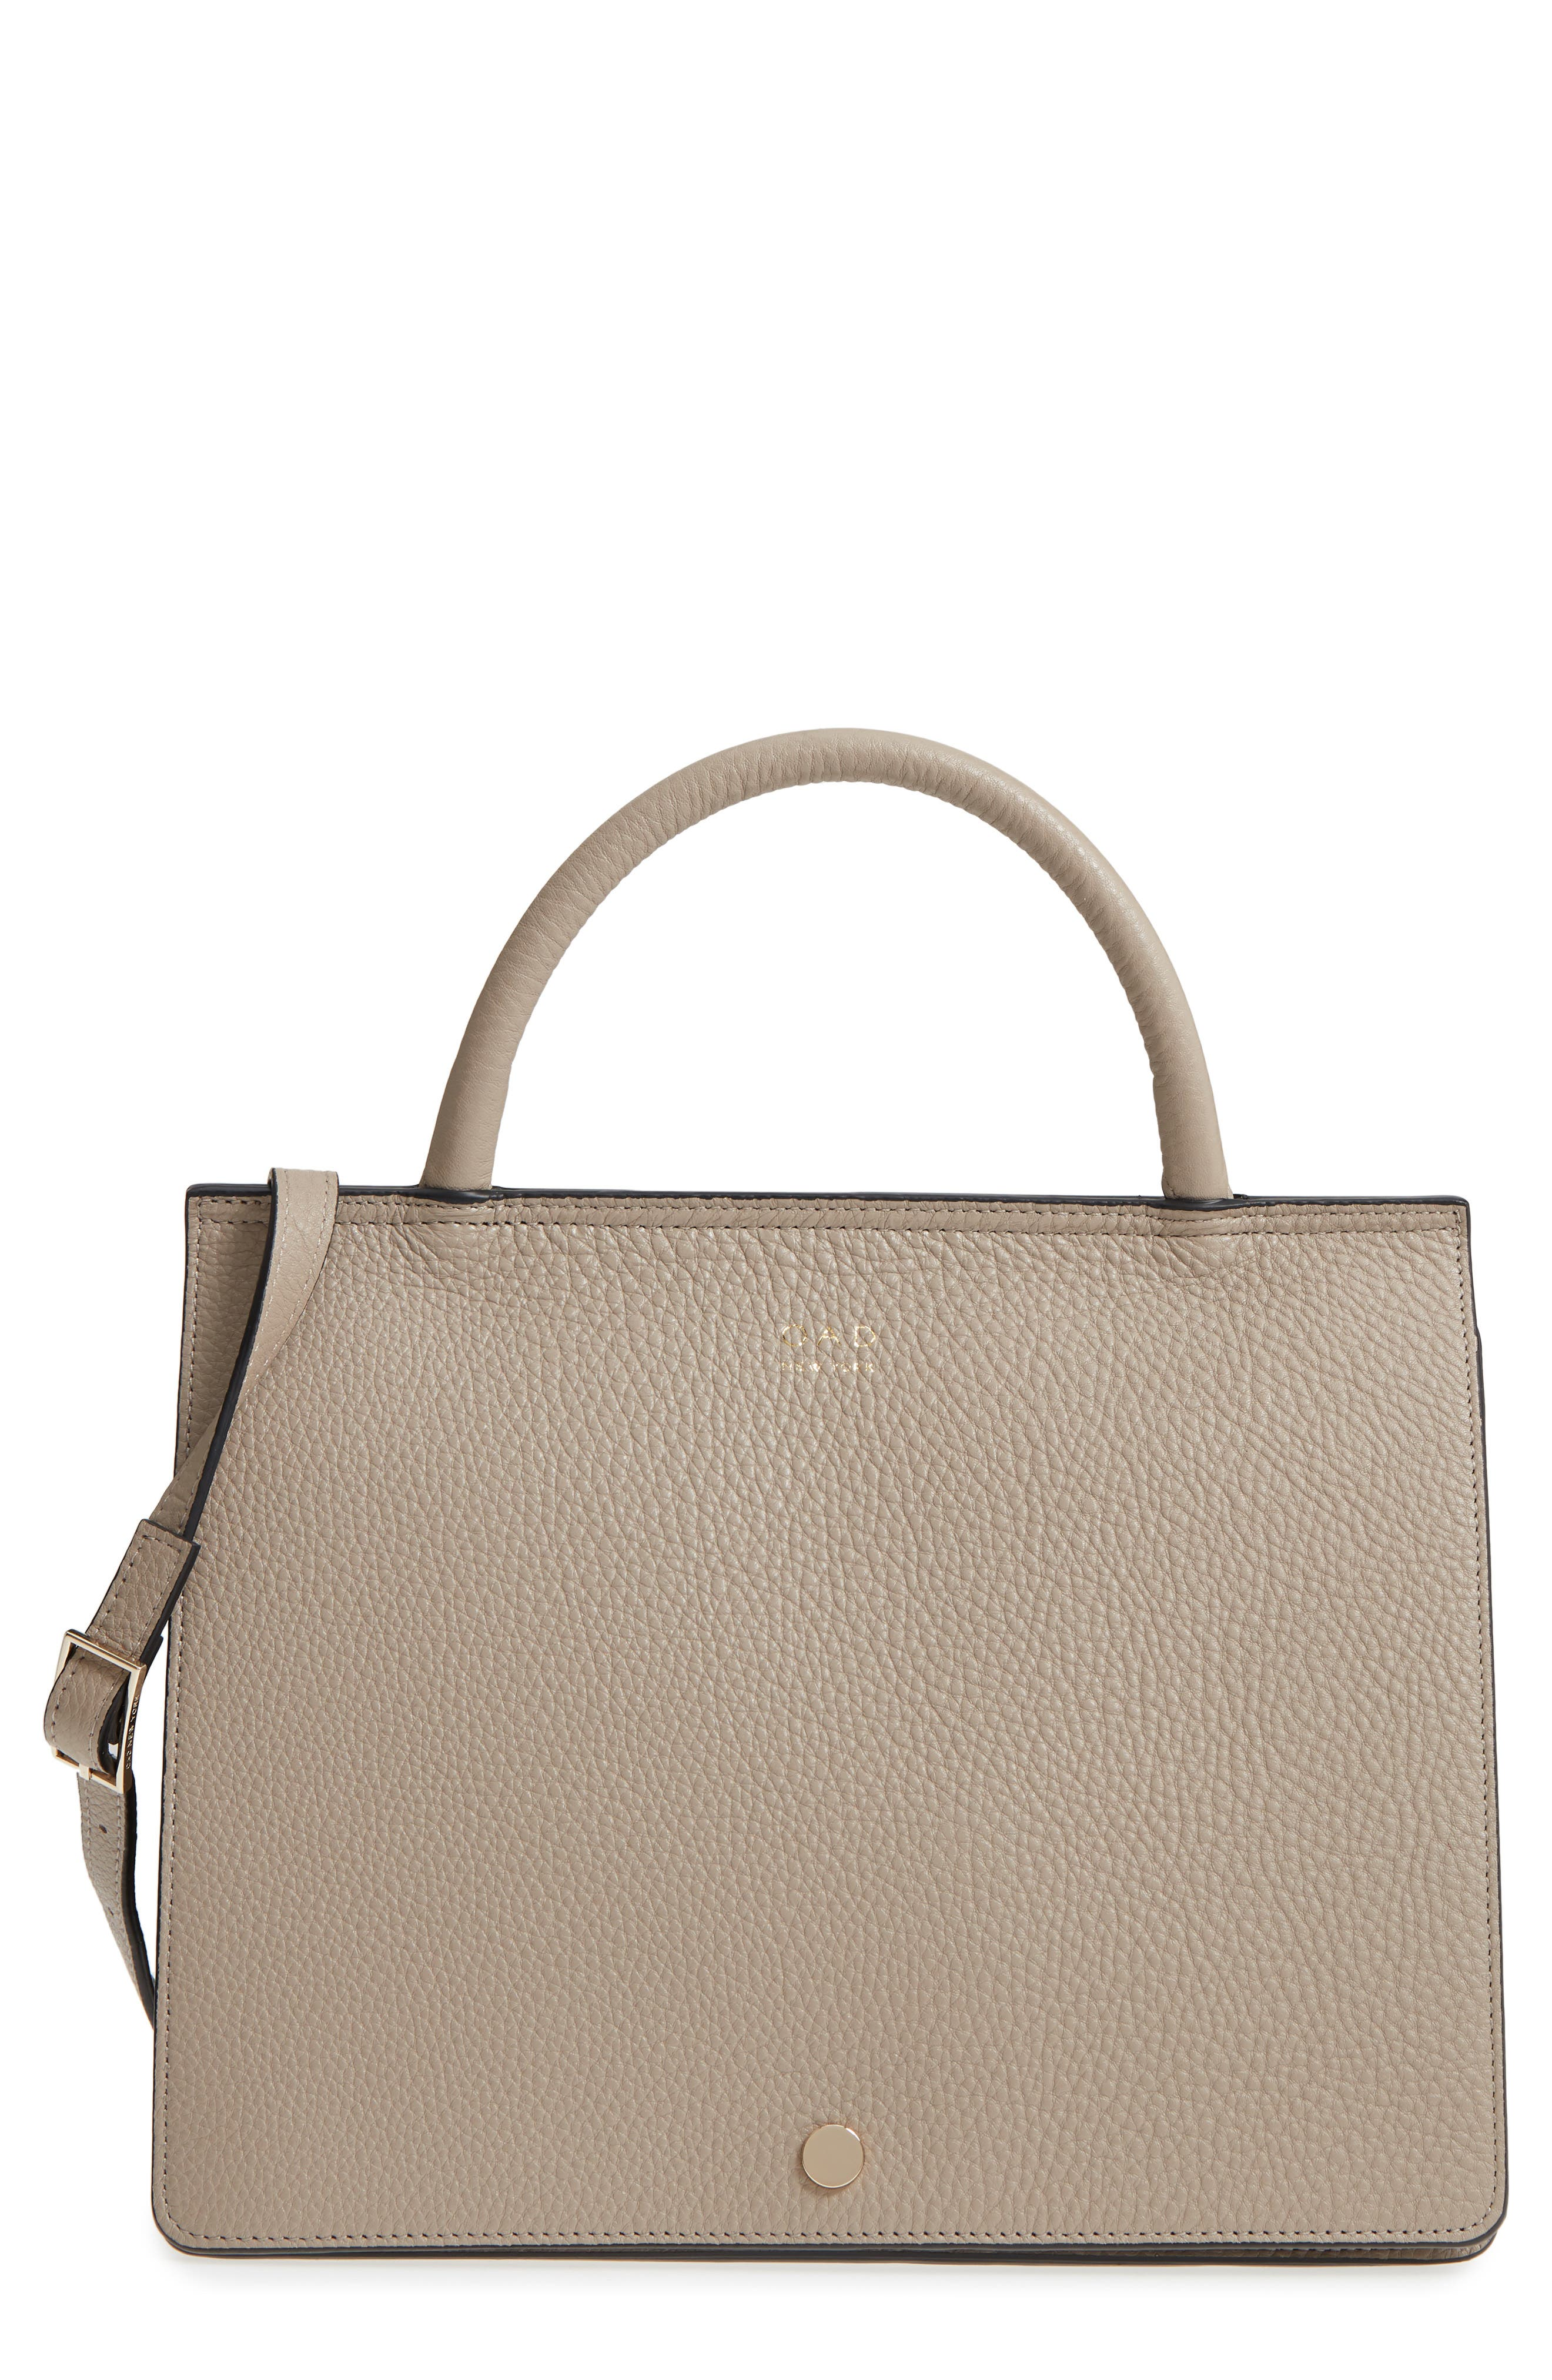 Prism Convertible Satchel,                         Main,                         color, TAUPE